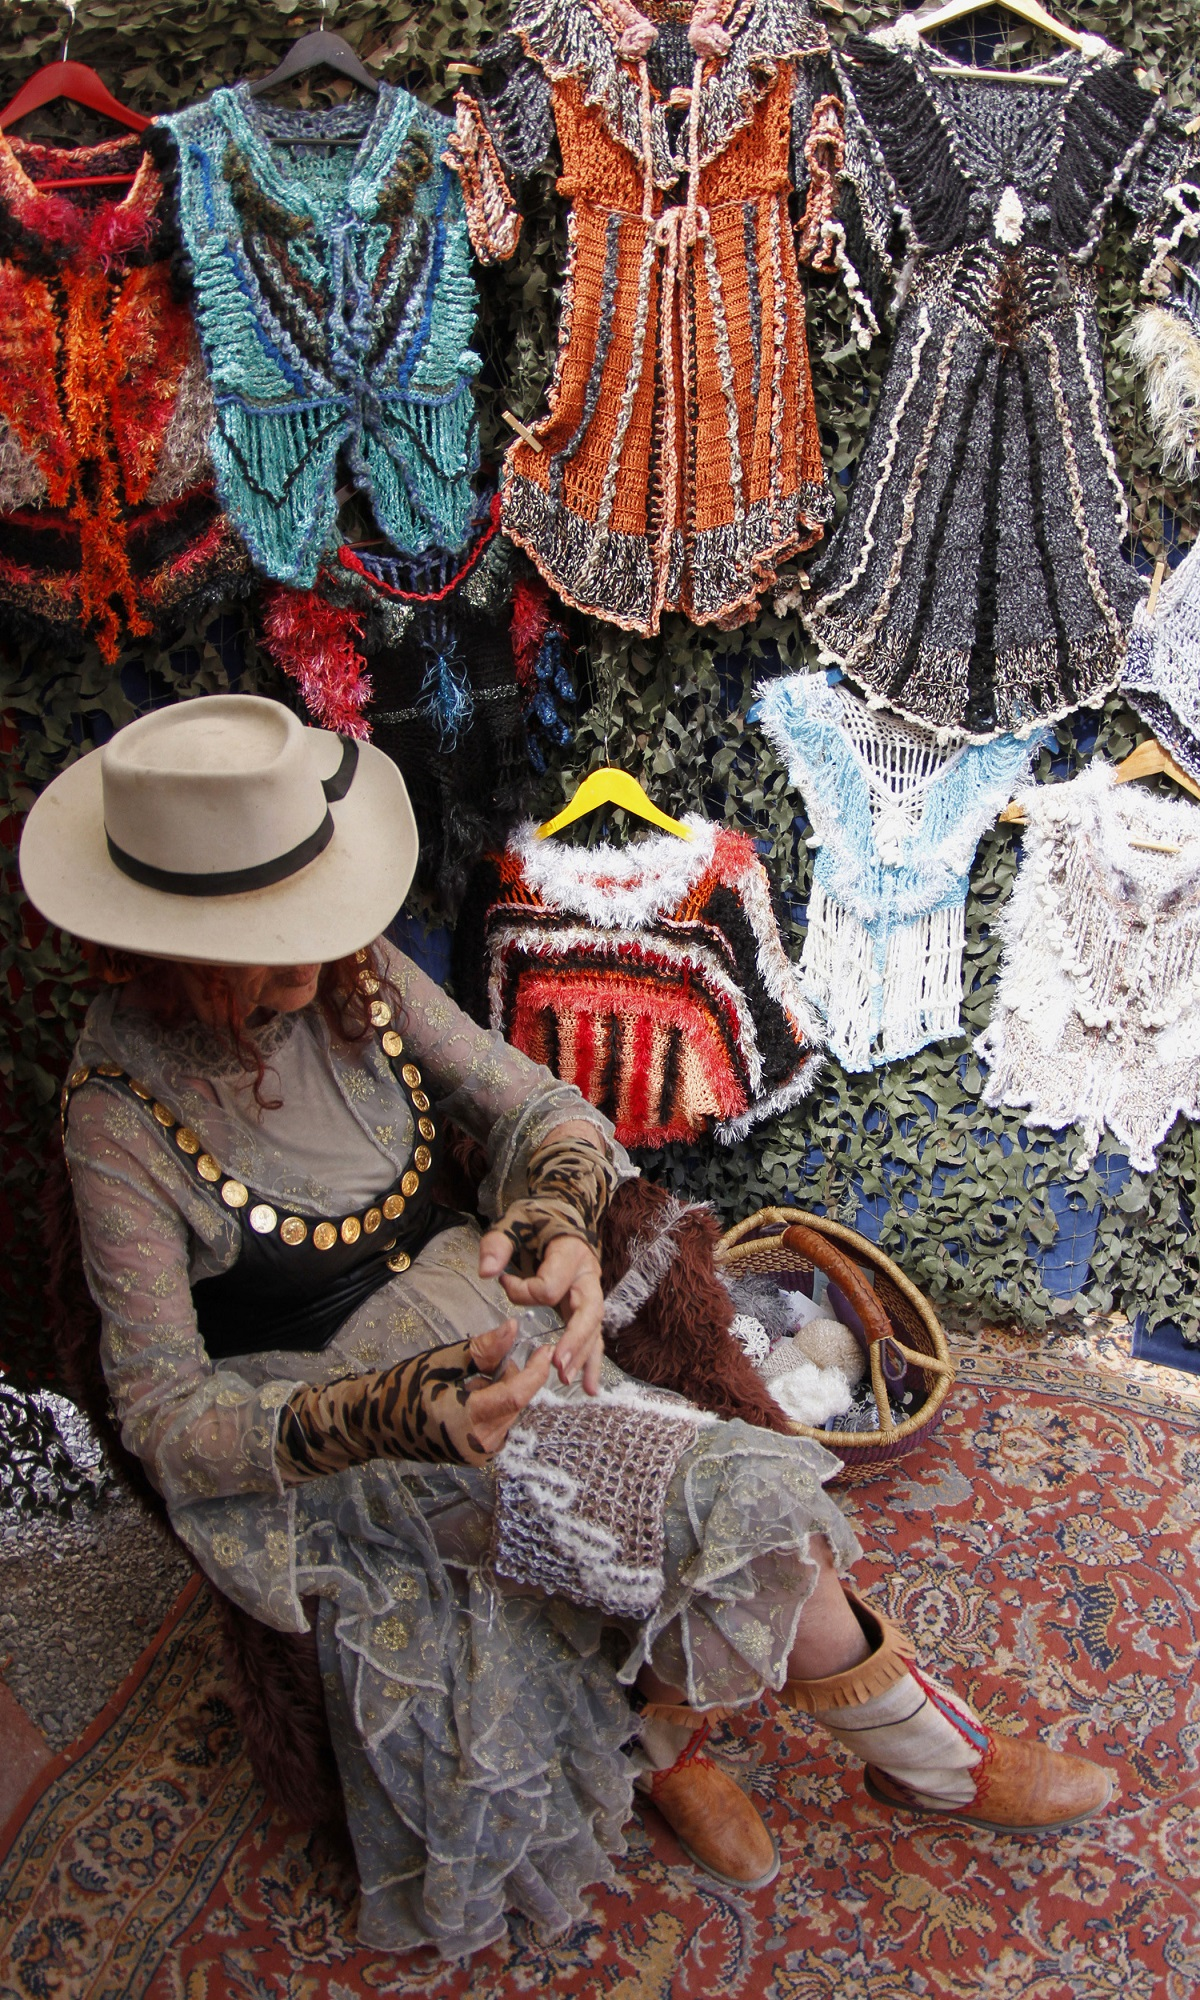 Mora of Germany knits at her clothes stall at the village of Las Dalias on the Balearic island of Ibiza, May 28, 2011. Mora sells clothes since she arrived in Ibiza 48 years ago following the hippie movement.   REUTERS/Enrique Calvo (SPAIN - Tags: SOCIETY) - GM1E75T0HLC01